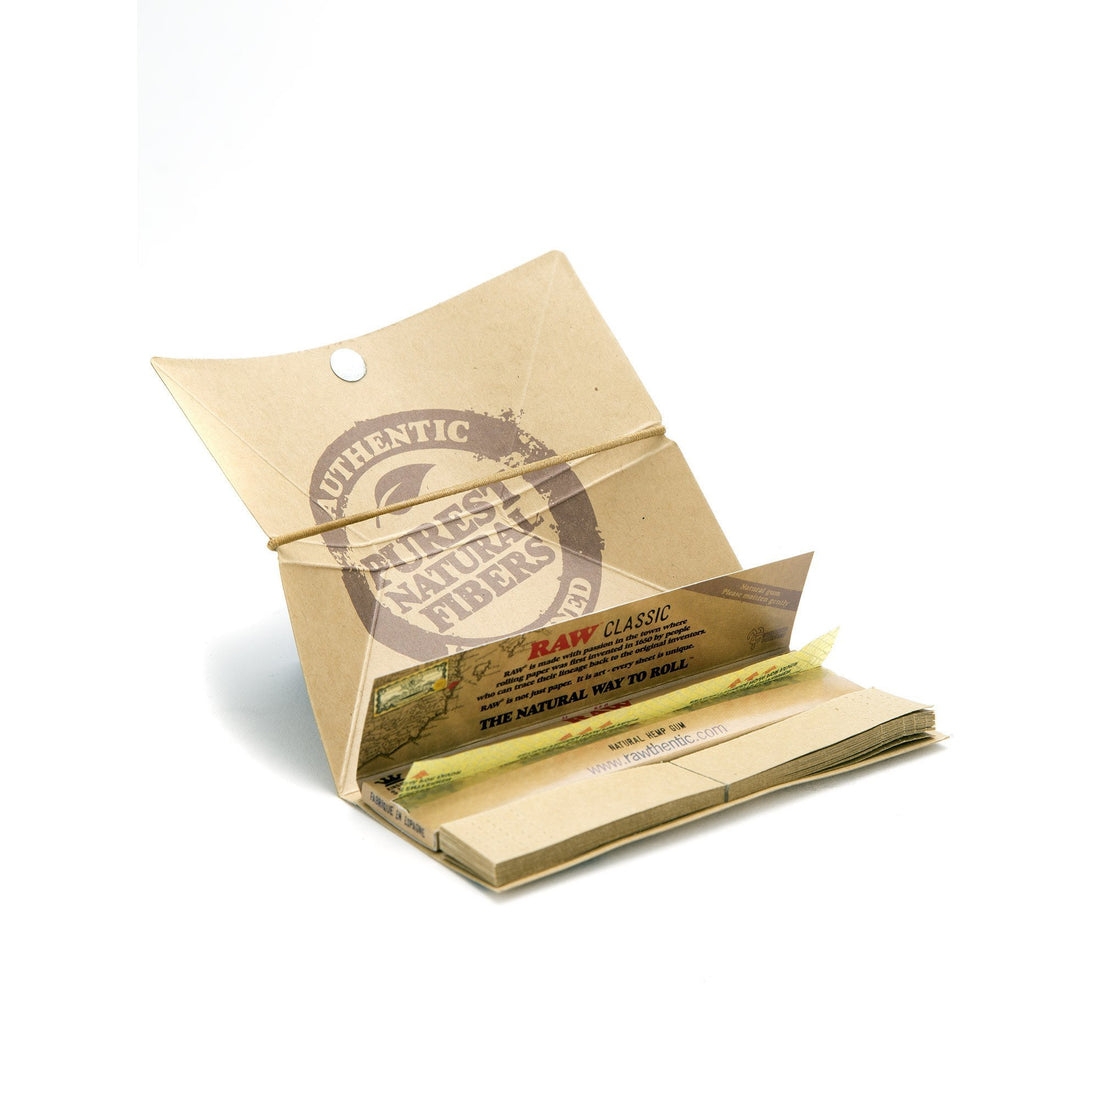 RAW Artesano King Size Slim Rolling Papers - 420 Science - The most trusted online smoke shop.